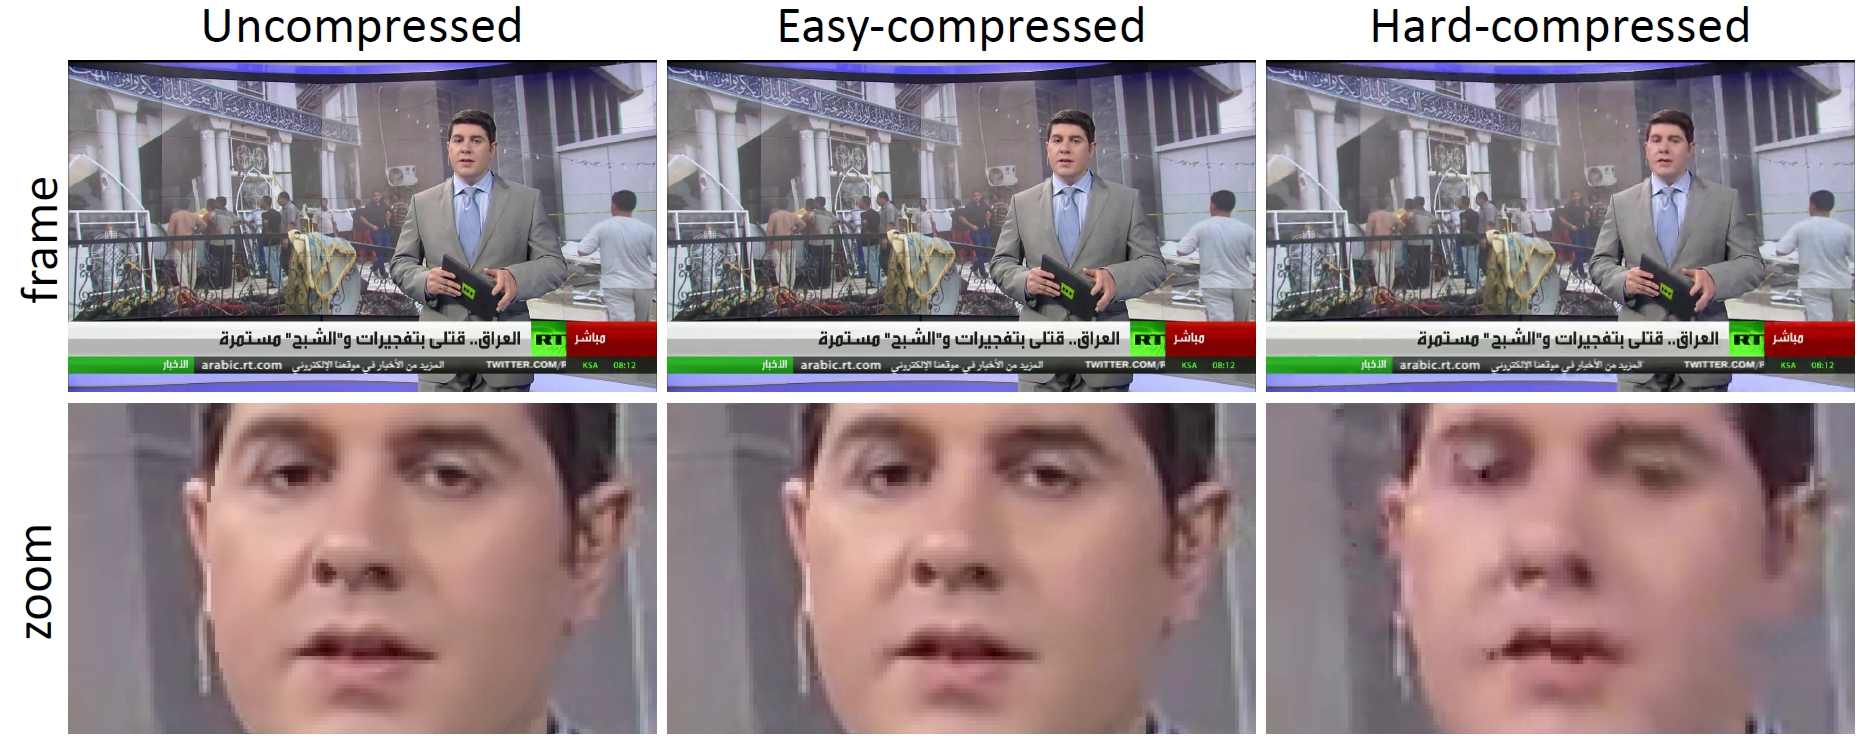 Uncompressed frame (left), easy-compressed (middle), and hard-compressed one (right).